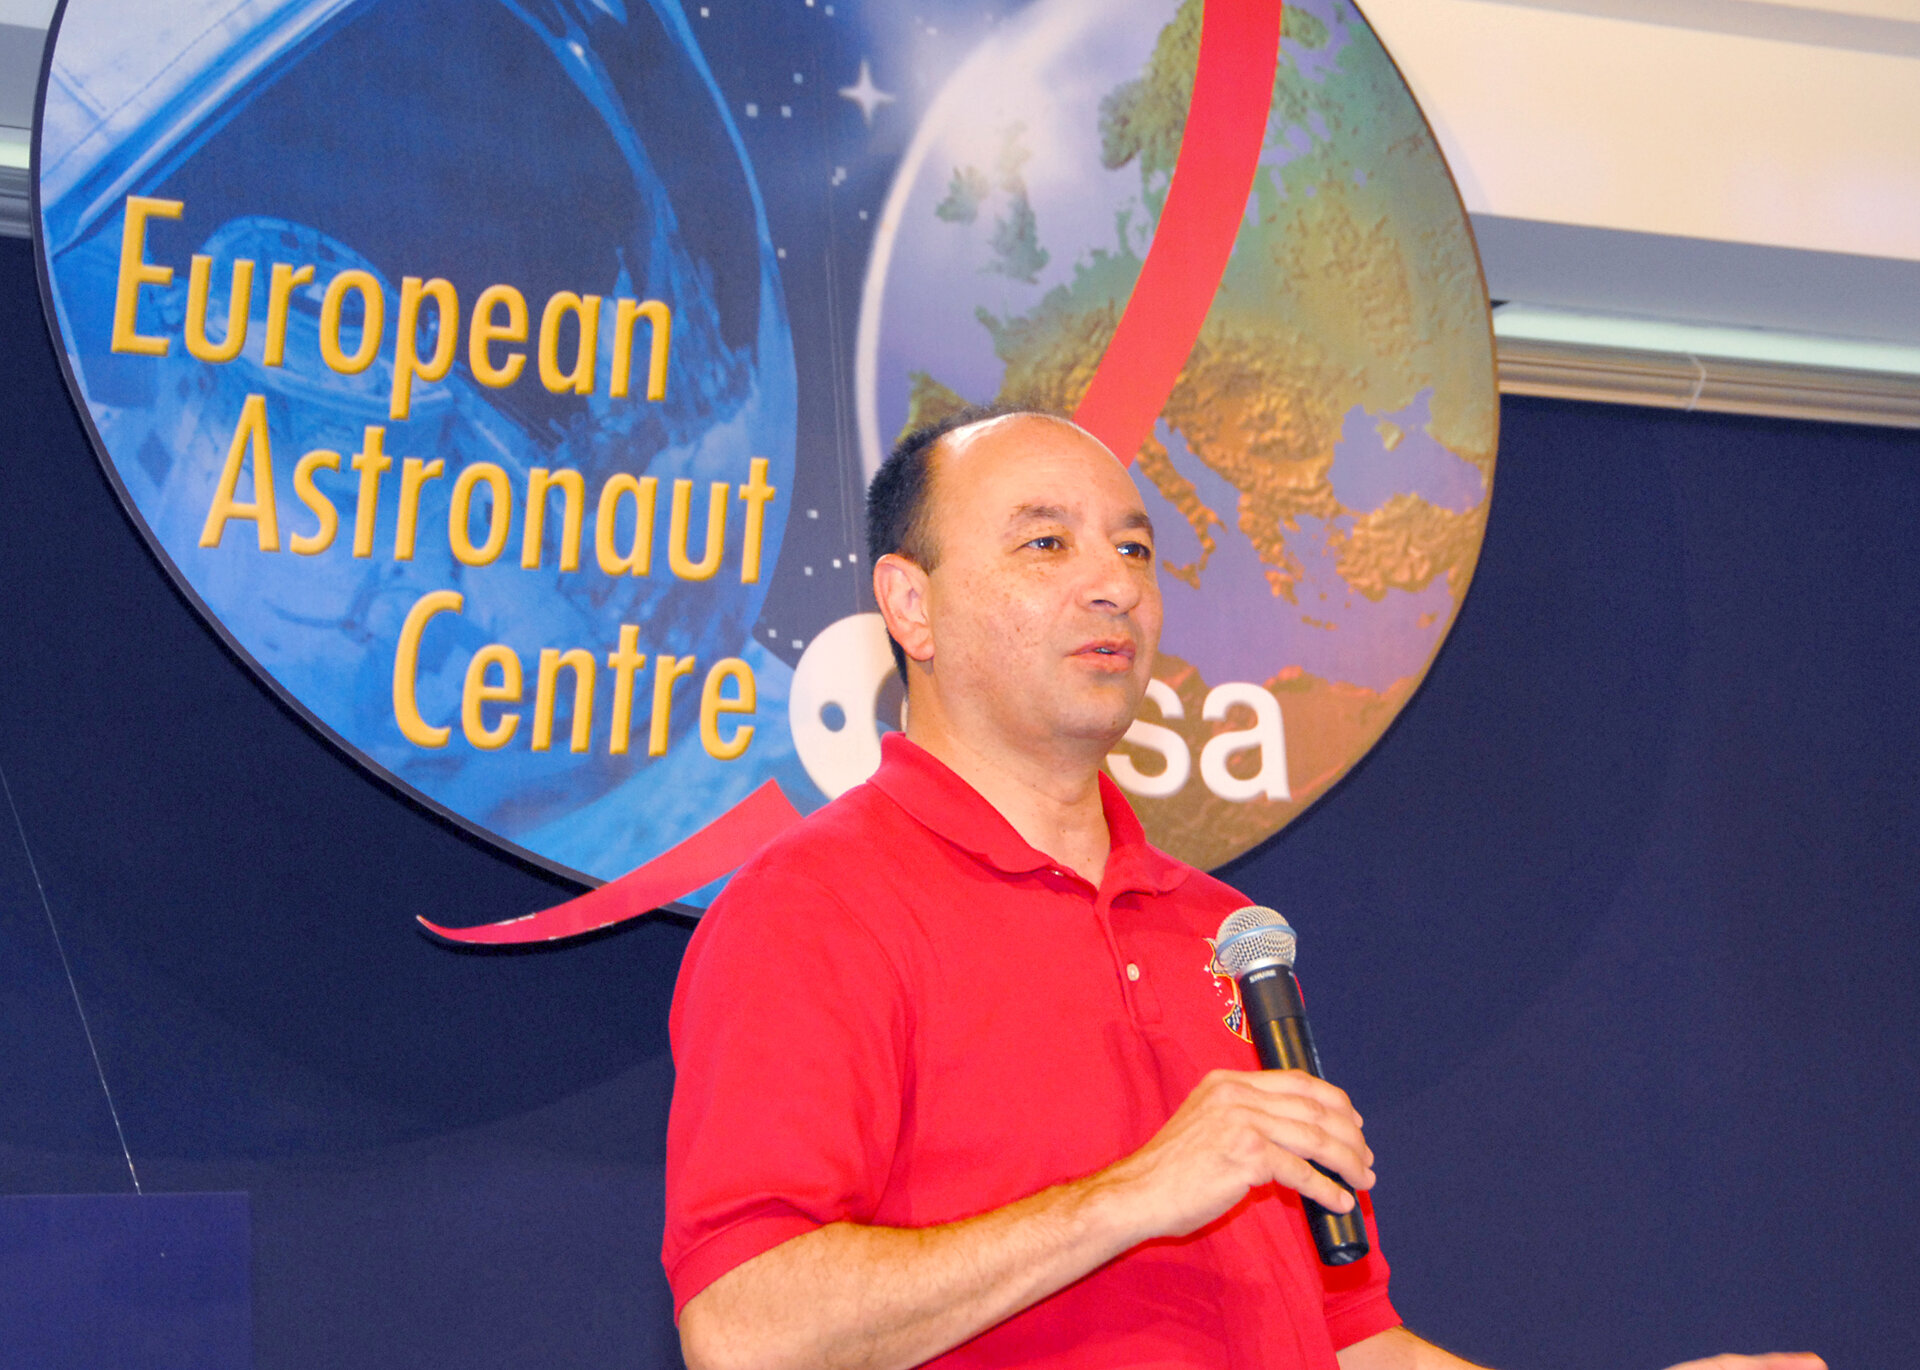 Commander Mark Polansky presents the STS-116 mission during a visit to the European Astronaut Centre